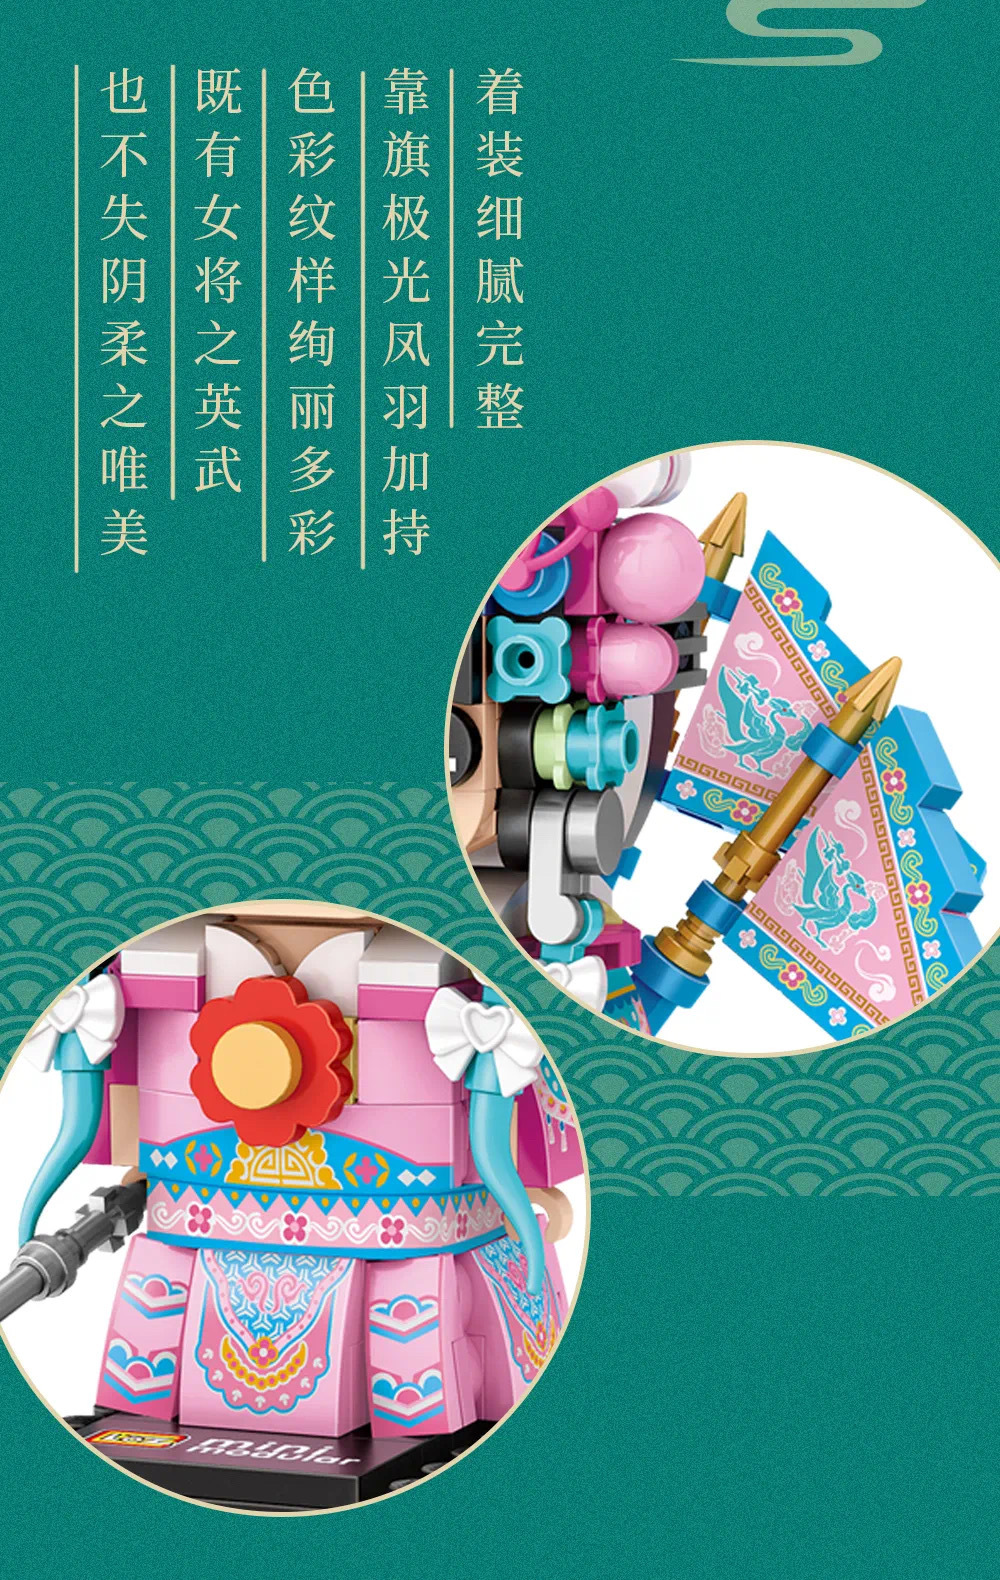 LOZ miniblock GUO Chao Peking Opera character building block model brickheadz series educational toy assembly 1541-1544